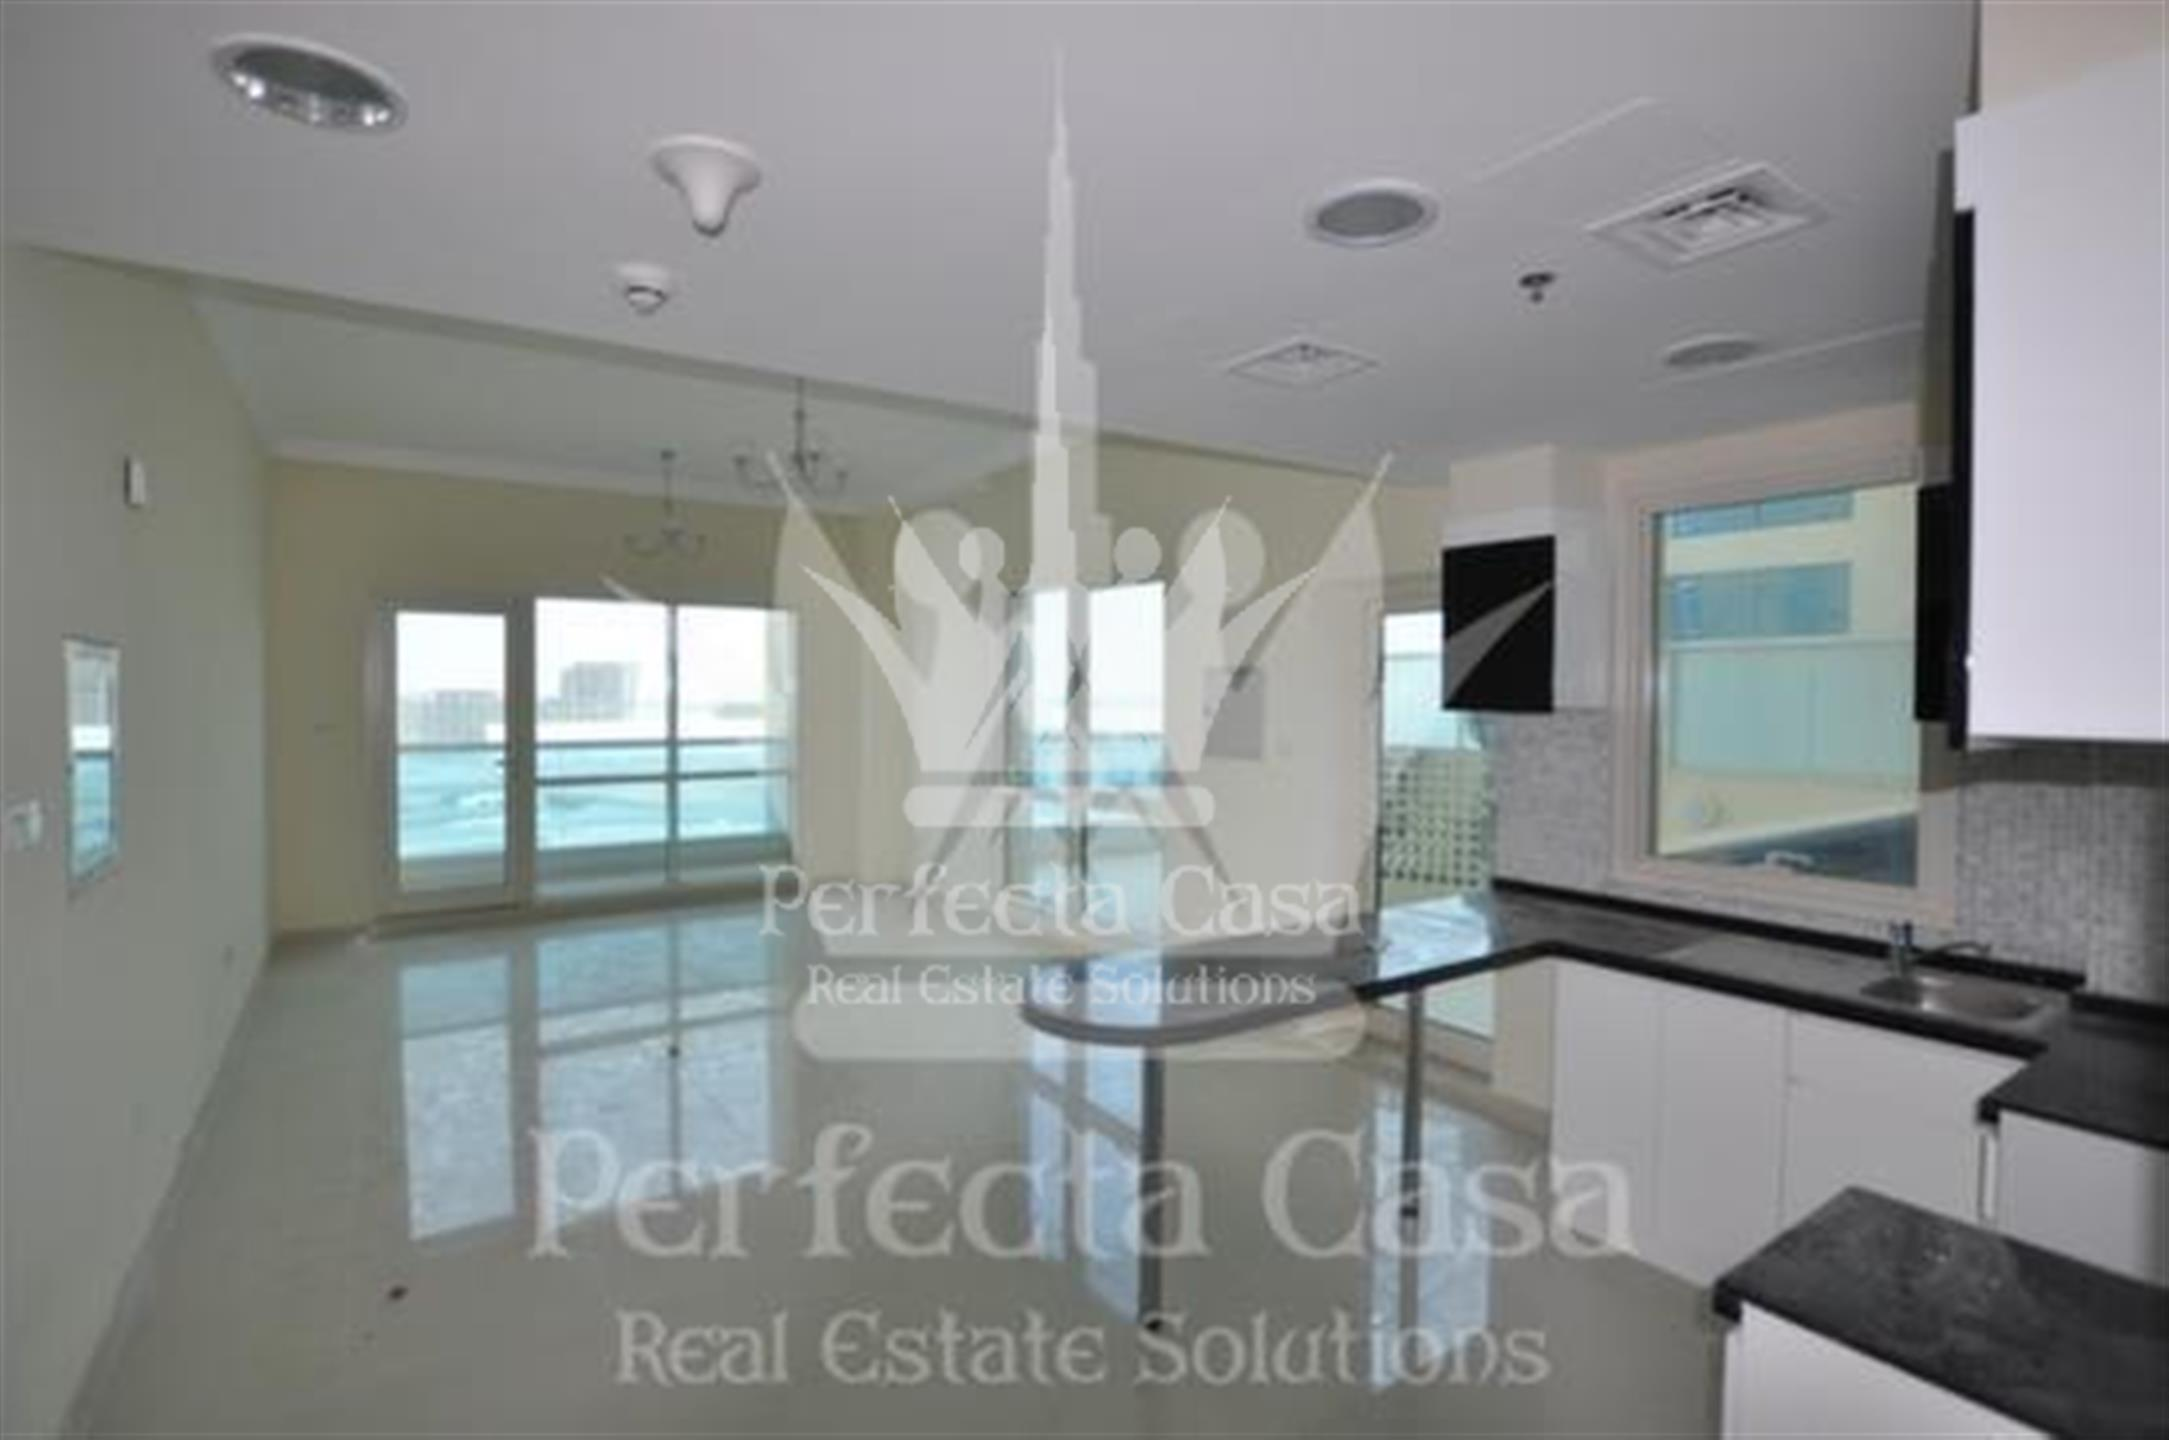 Property - Apartment for sale in Business Bay- Dubai - Rbc Tower